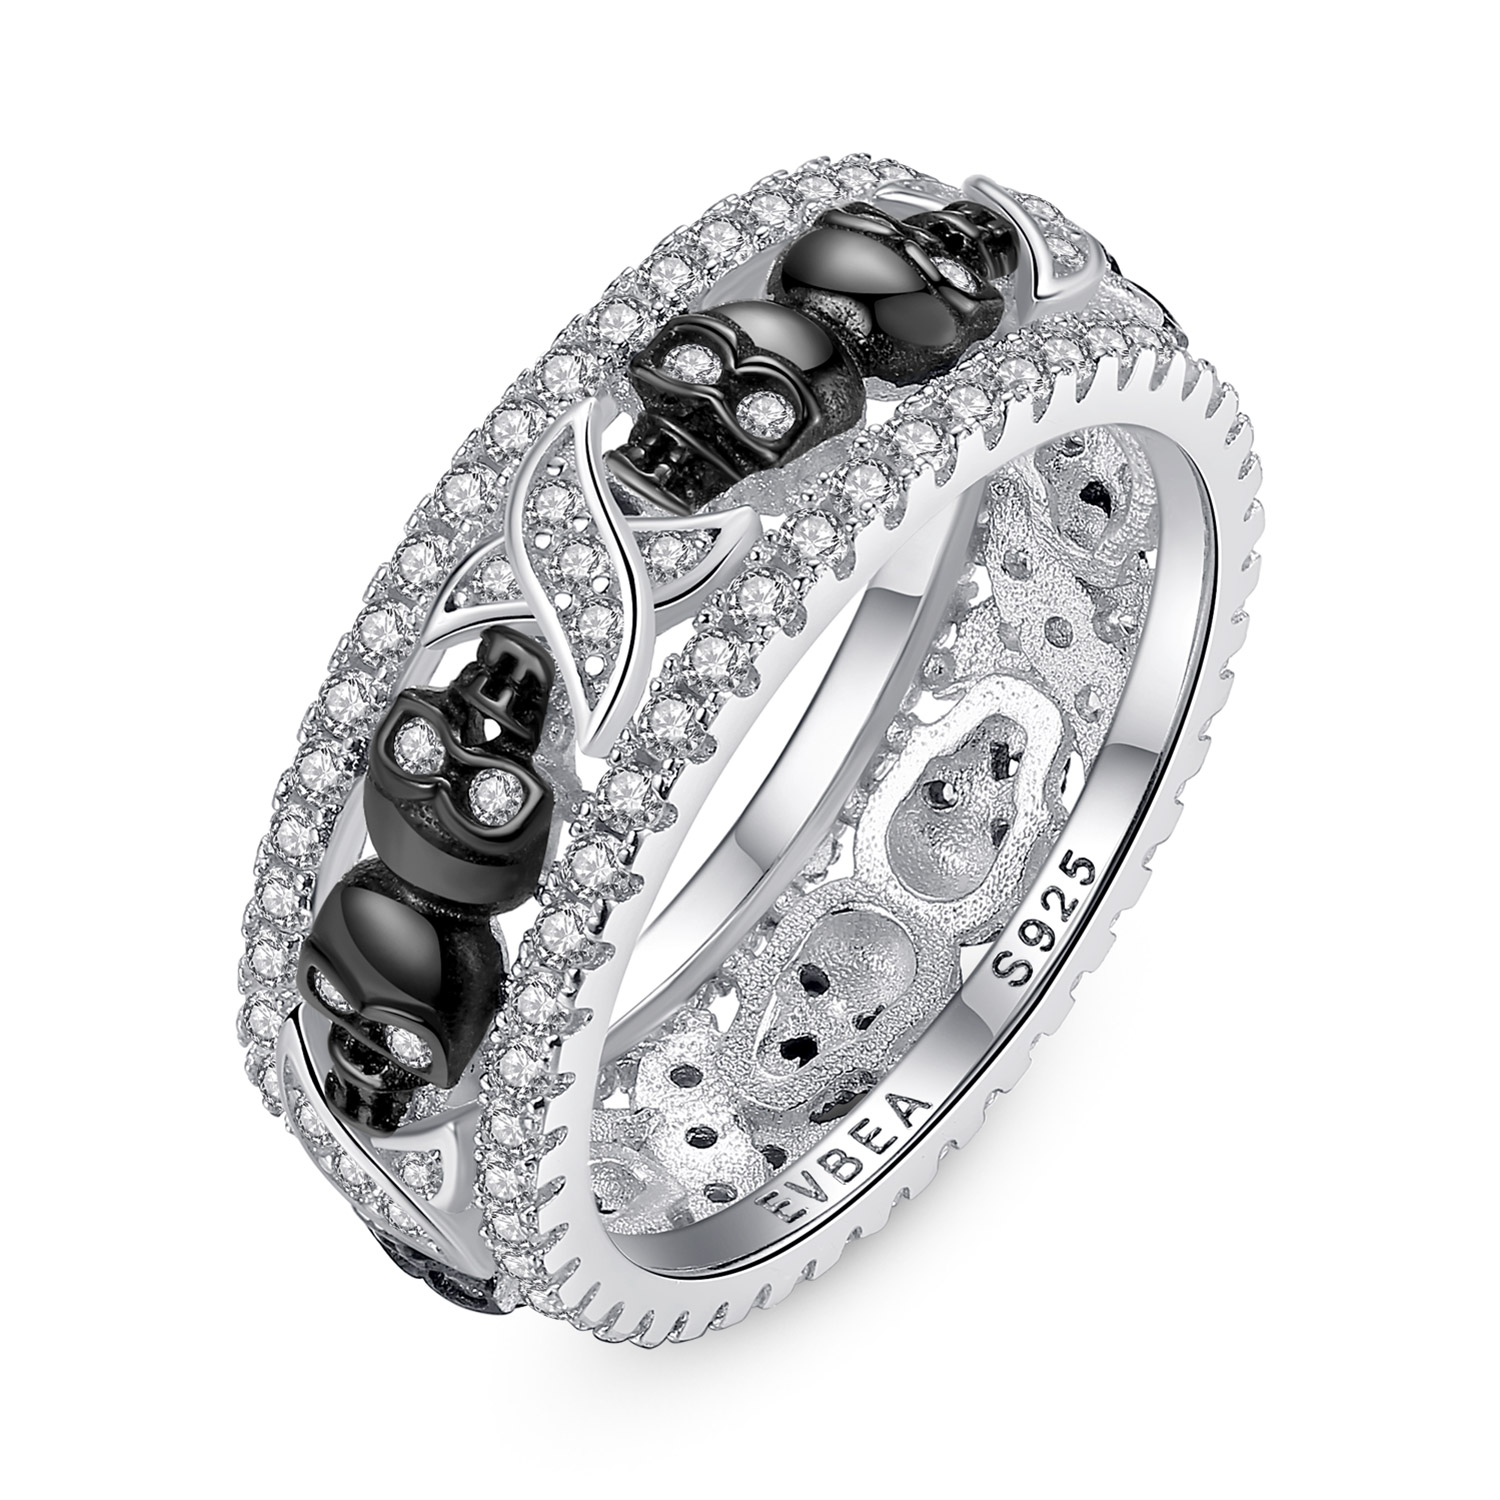 ae12b7f180cd2 EVBEA Thumb Rings for Women Sterling Silver Promise Engagement Skull  Wedding Bands with Crystal Birthstone and Cubic Zirconia